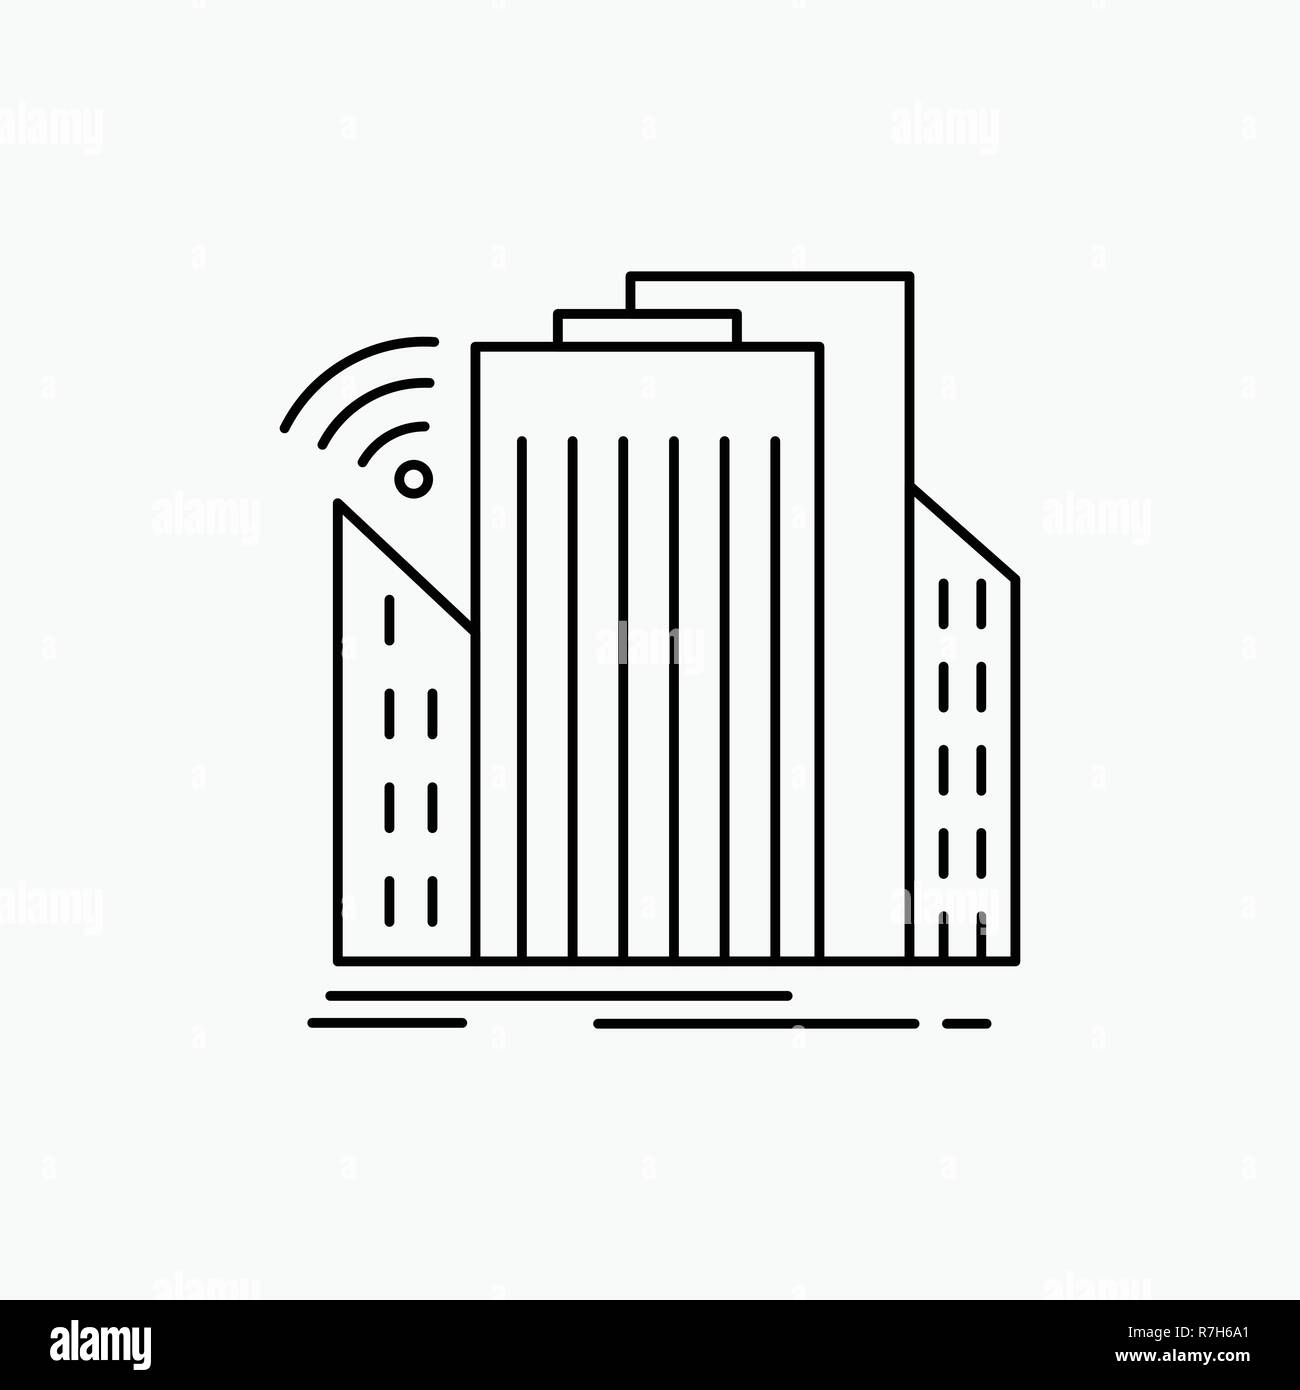 Buildings, city, sensor, smart, urban Line Icon. Vector isolated illustration - Stock Vector